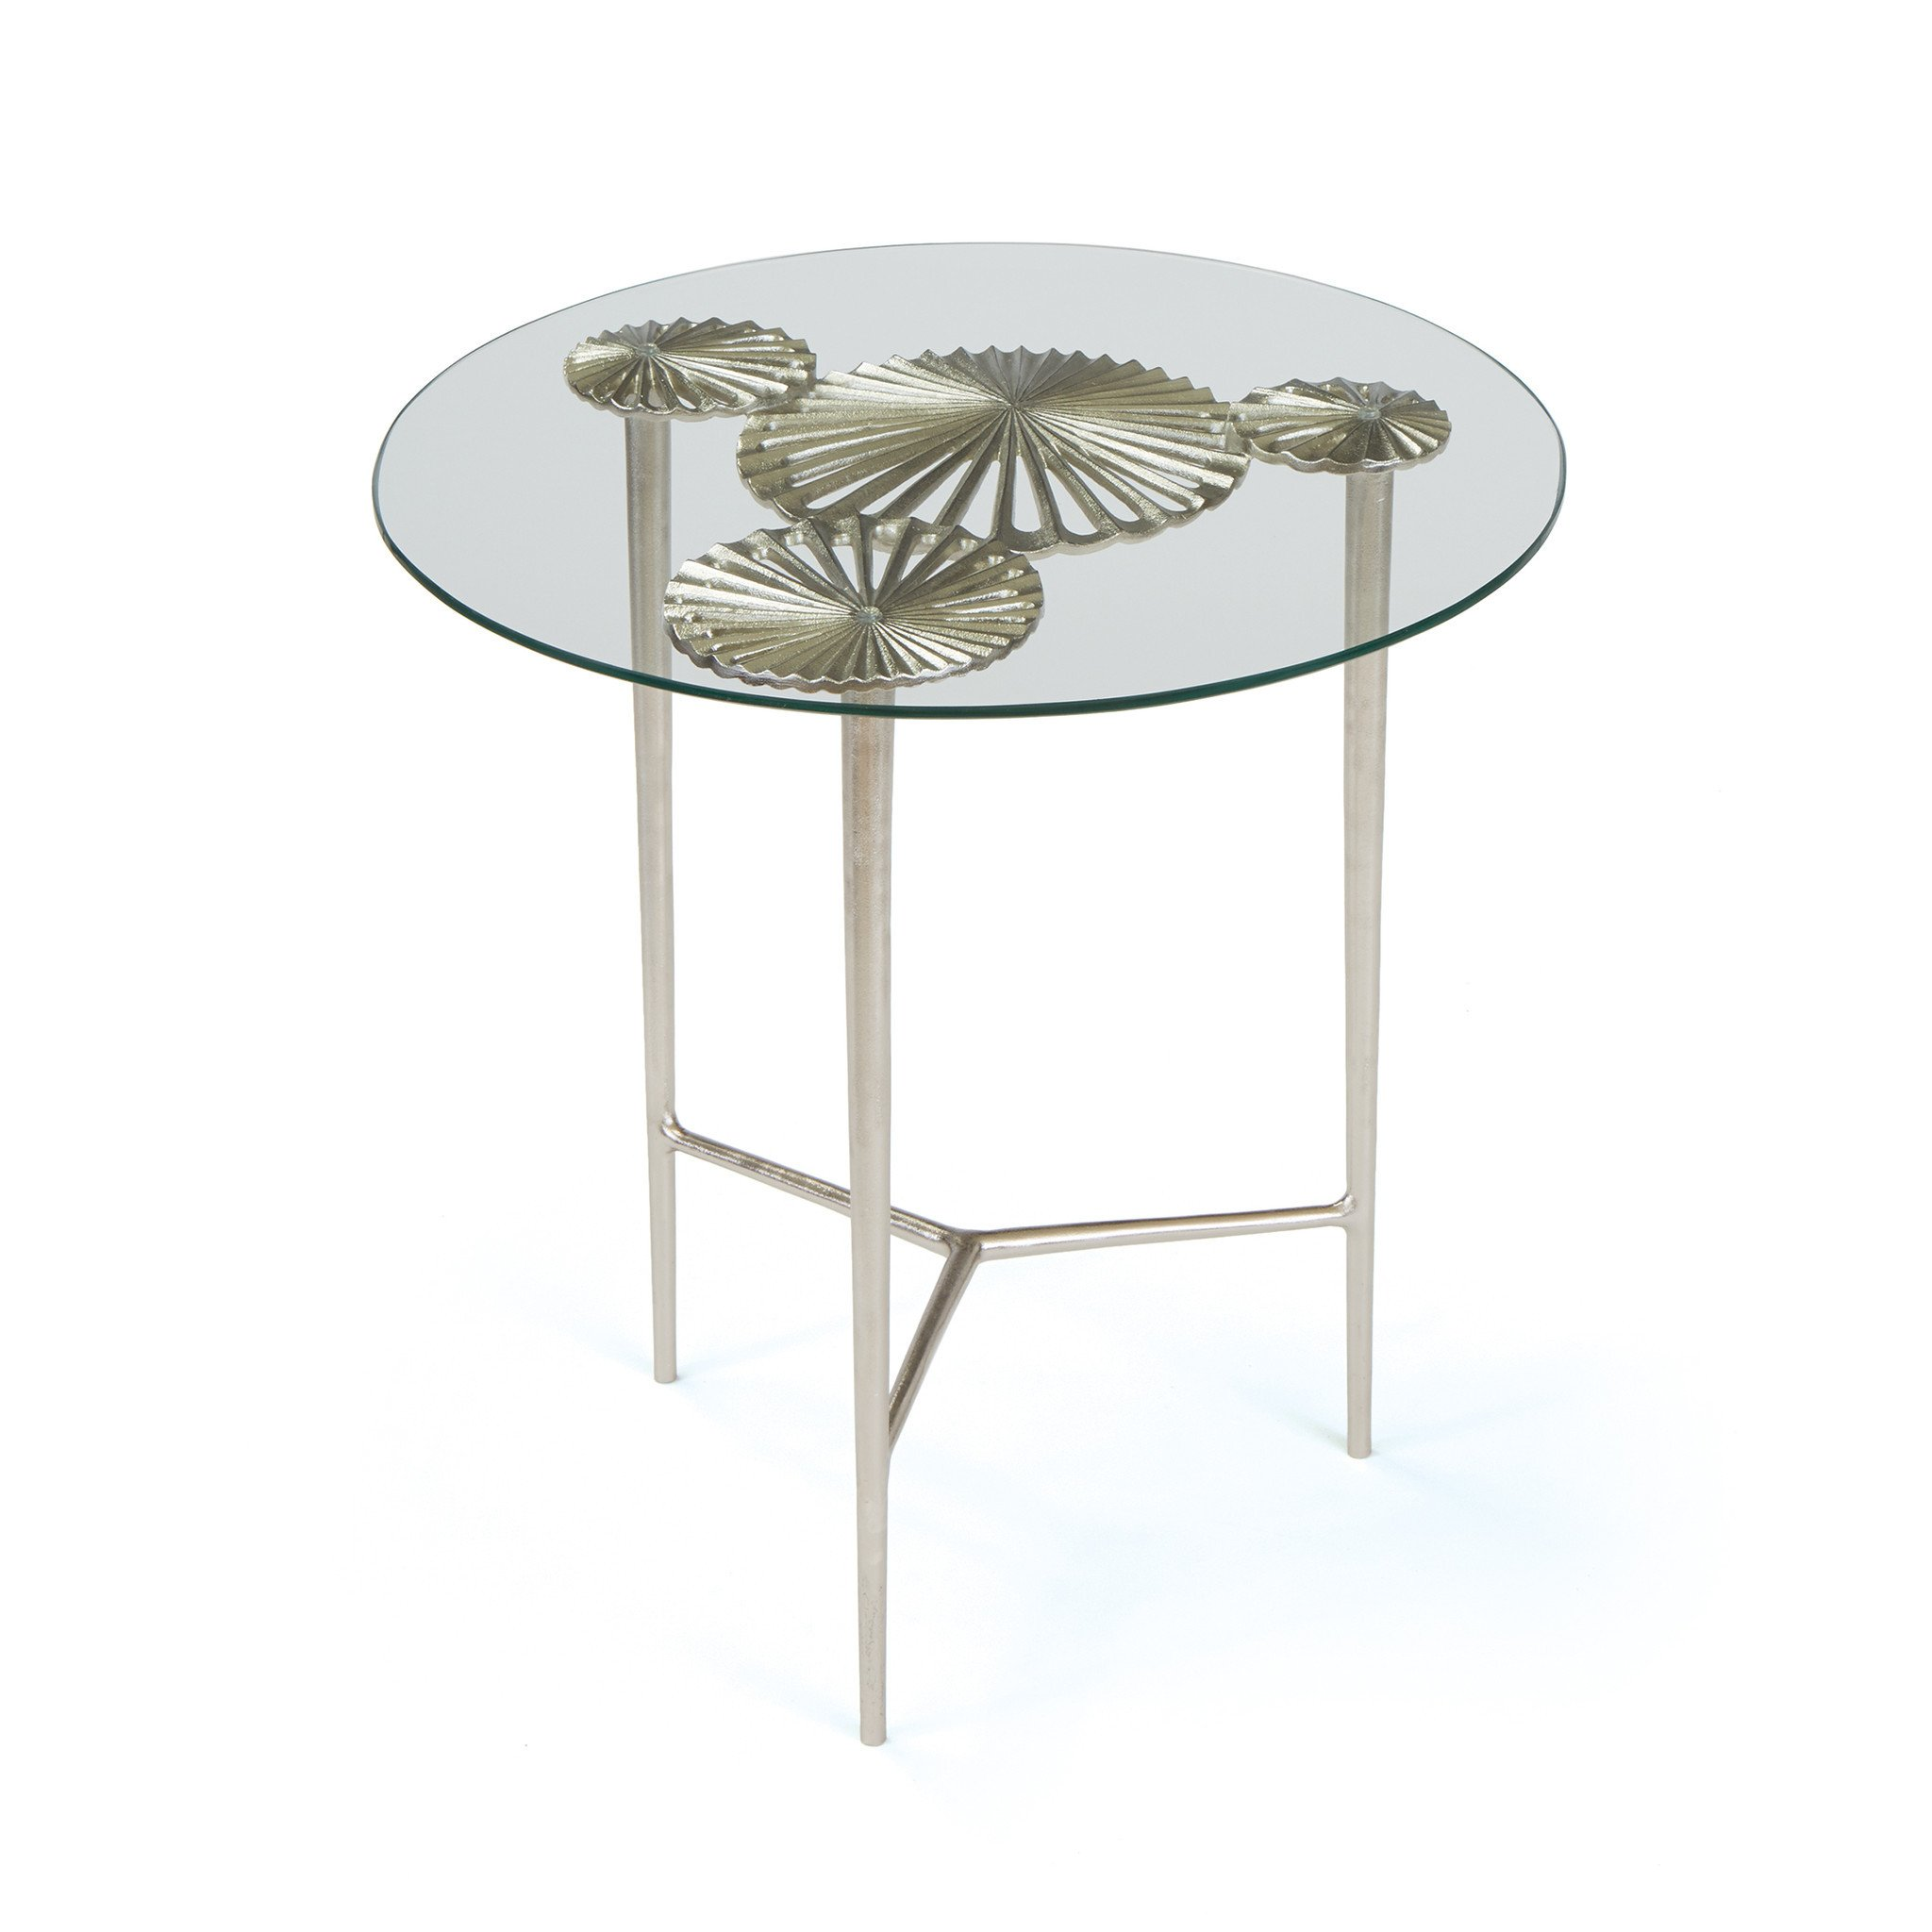 modern contemporary rustic vintage side end tables alan decor alton table with round glass top brushed nickel aluminum accent solid wood farmhouse dining small tiffany lamp piece